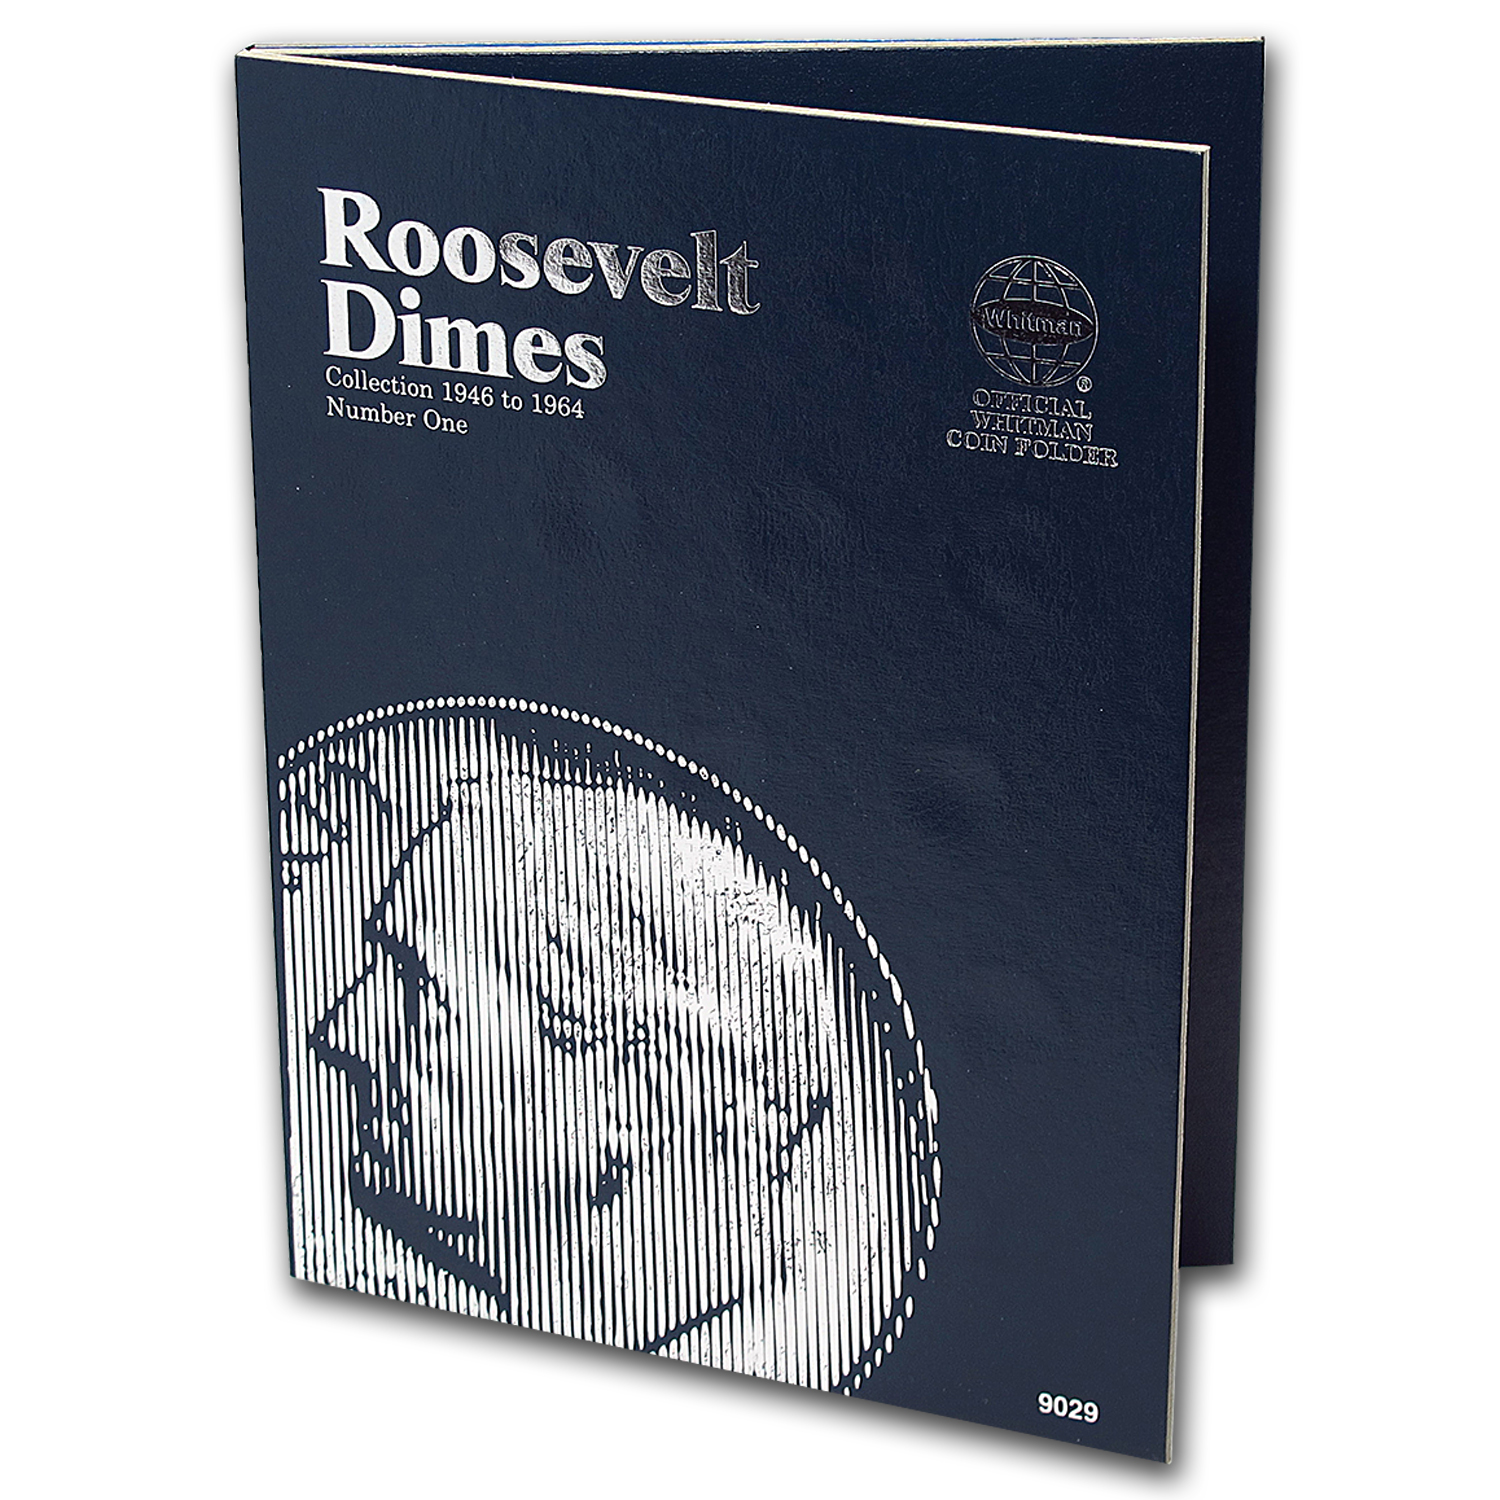 Whitman Folder #9029 - Roosevelt Dimes 1946-1964